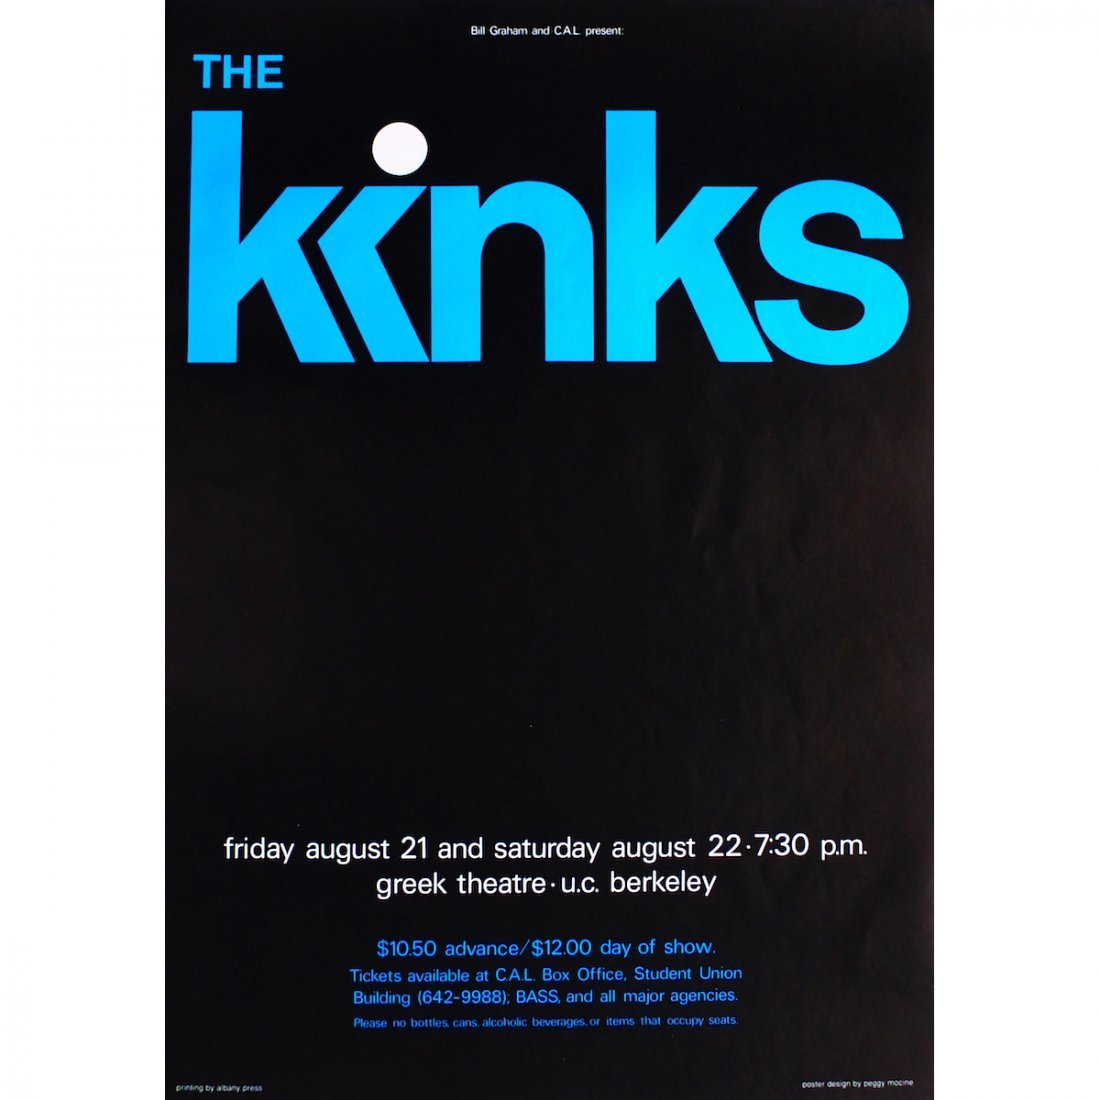 The Kinks - 1981 Concert Poster